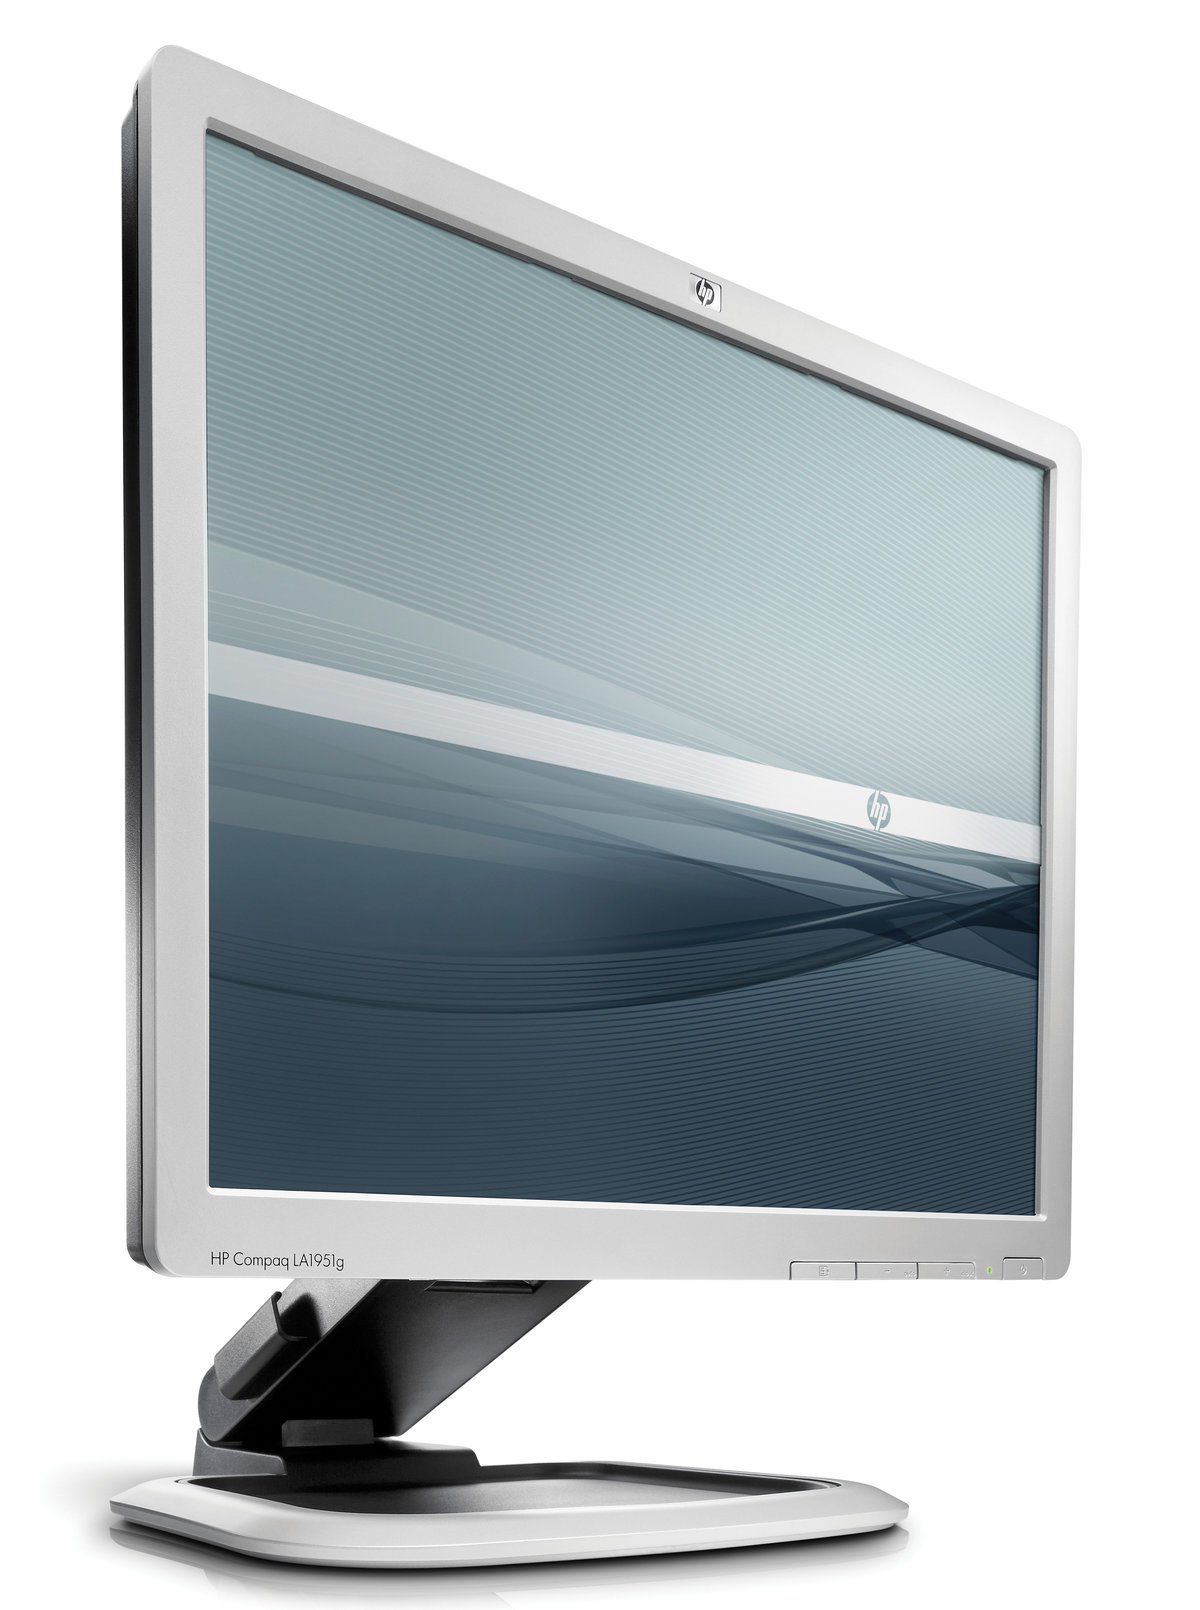 "HP TFT LA1951g 19"" Flat Panel Monitor (250 cd/m2,1000:1,5 ms,160°/160°,VGA,DVI-D,USB hub,1280 x 1024,portrait orientation,TCO,EPEAT Gold)(repl KR145AA"